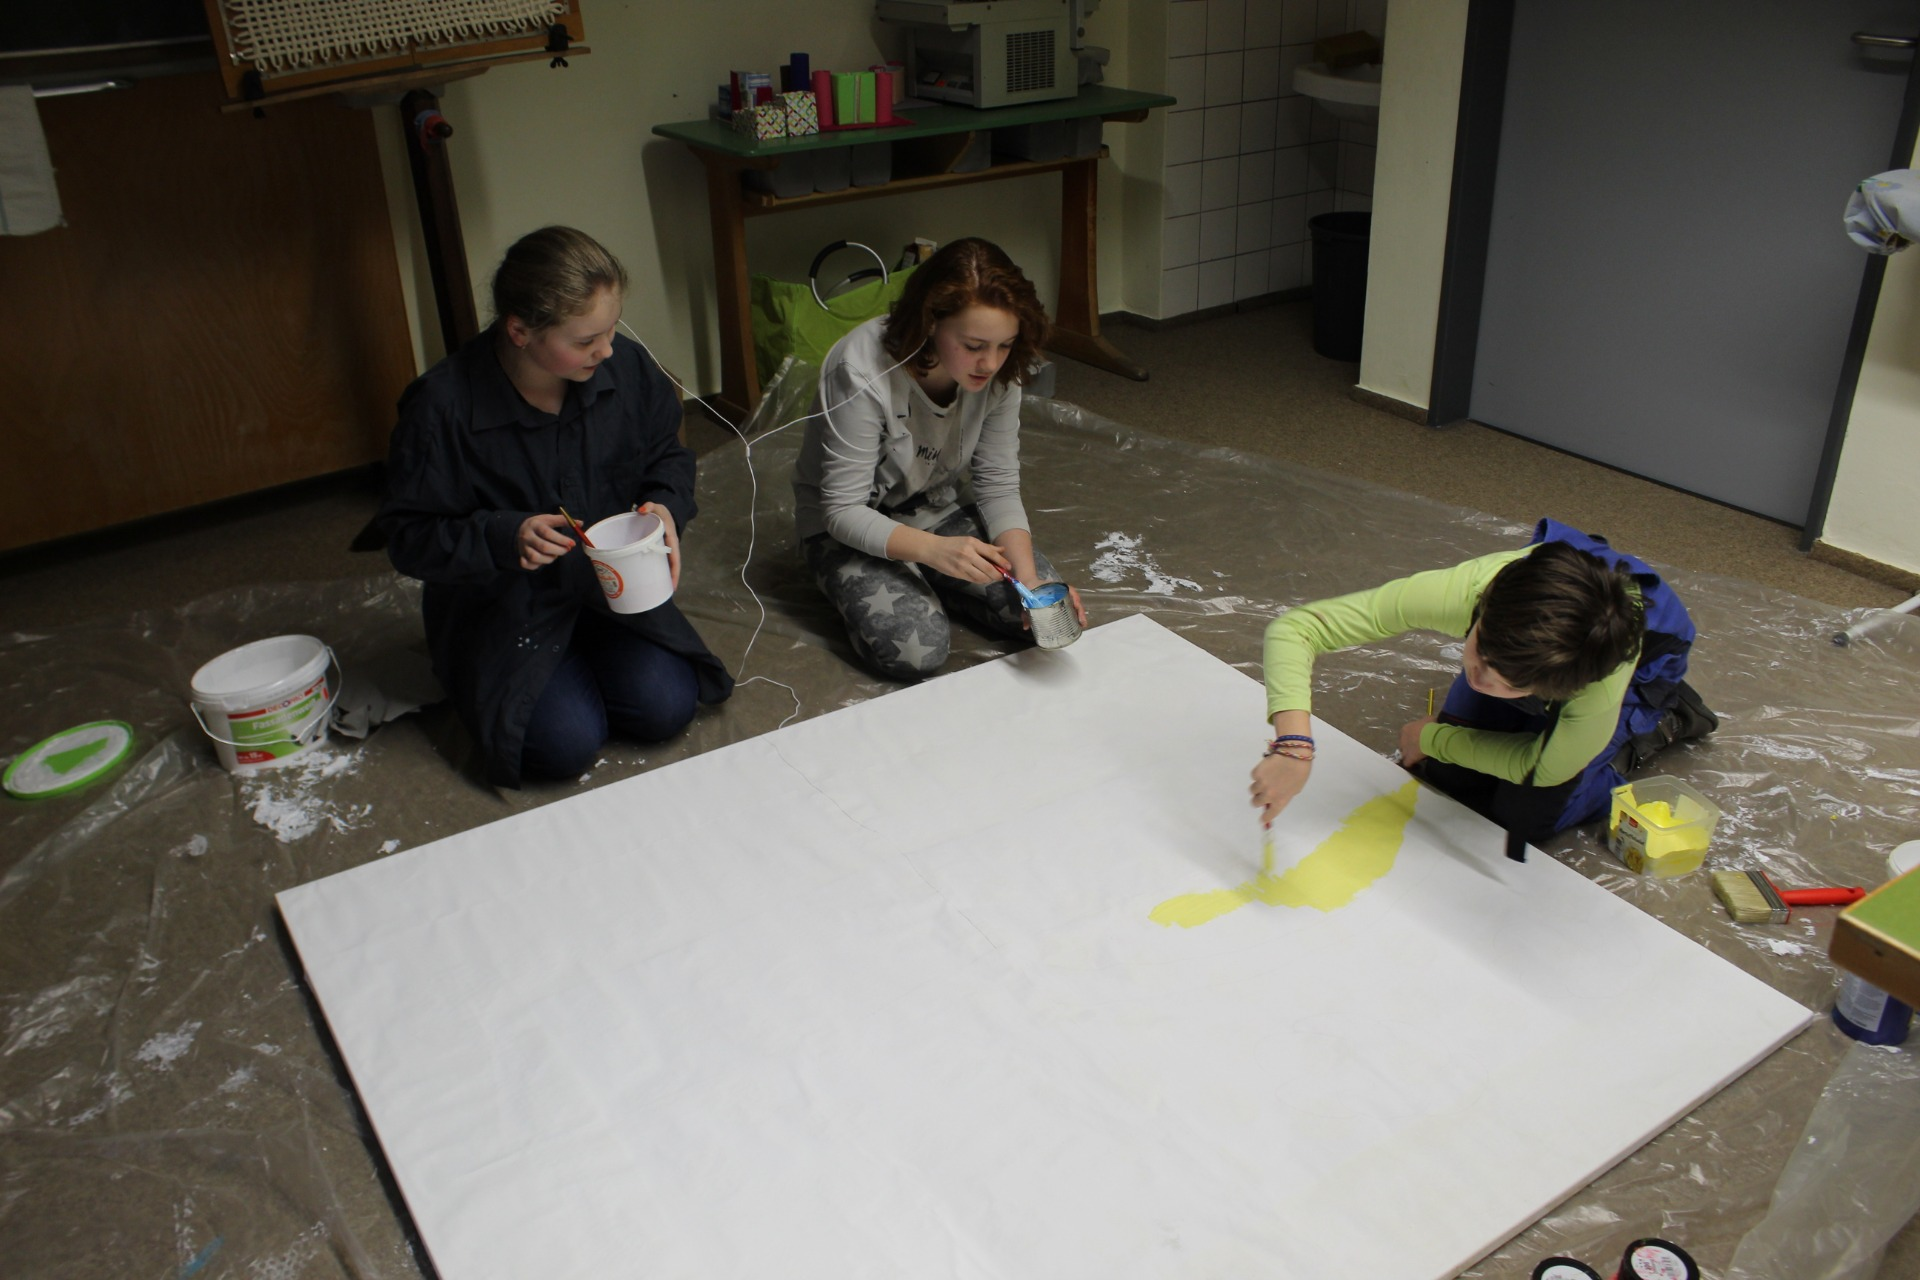 Action-Painting - Bild 1